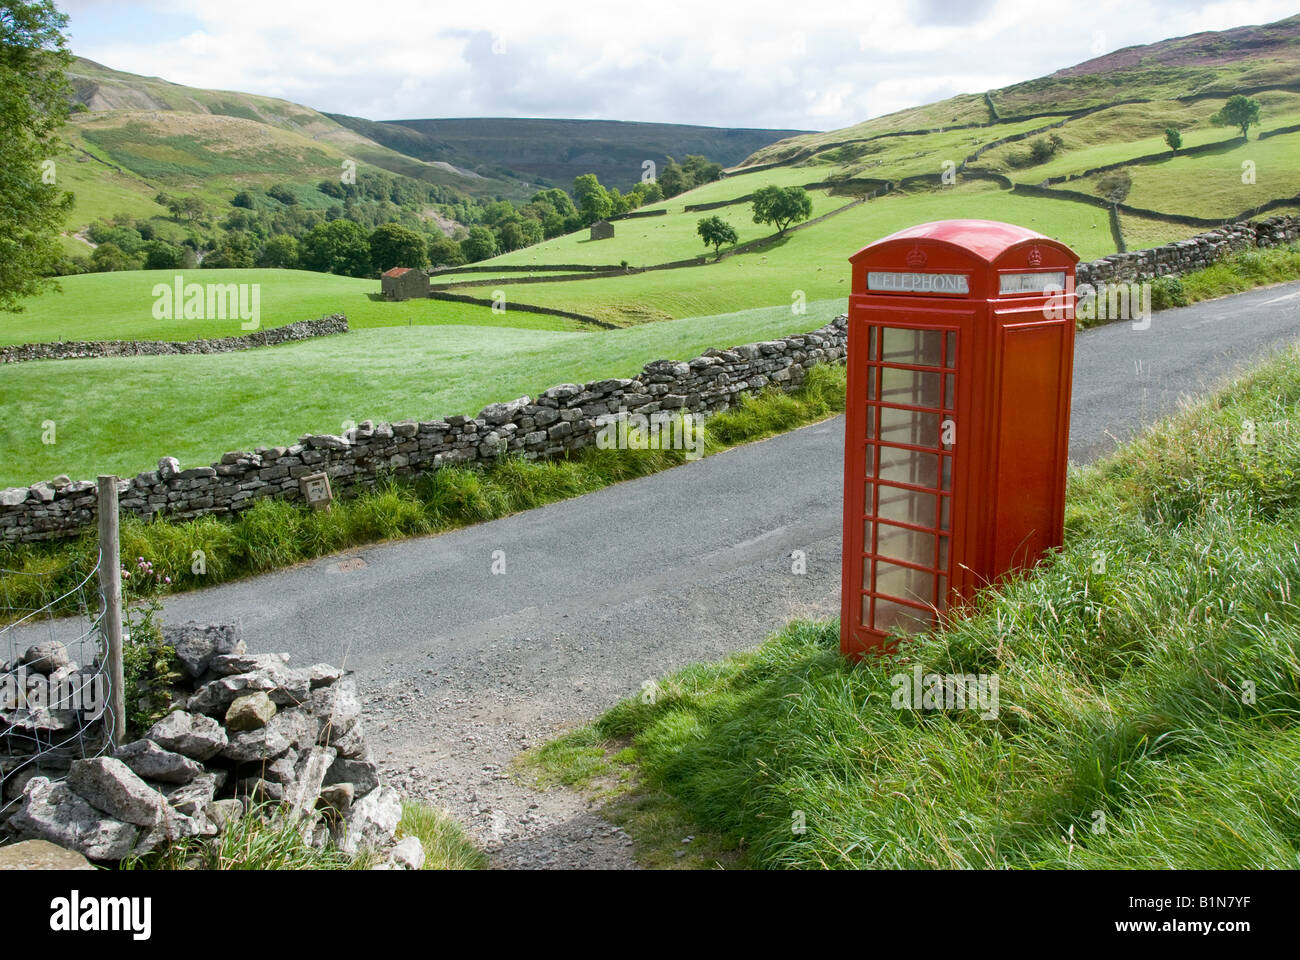 Stonewalls and red phonebox, Keld Village, Swaledale, Yorkshire Dales National Park - Stock Image